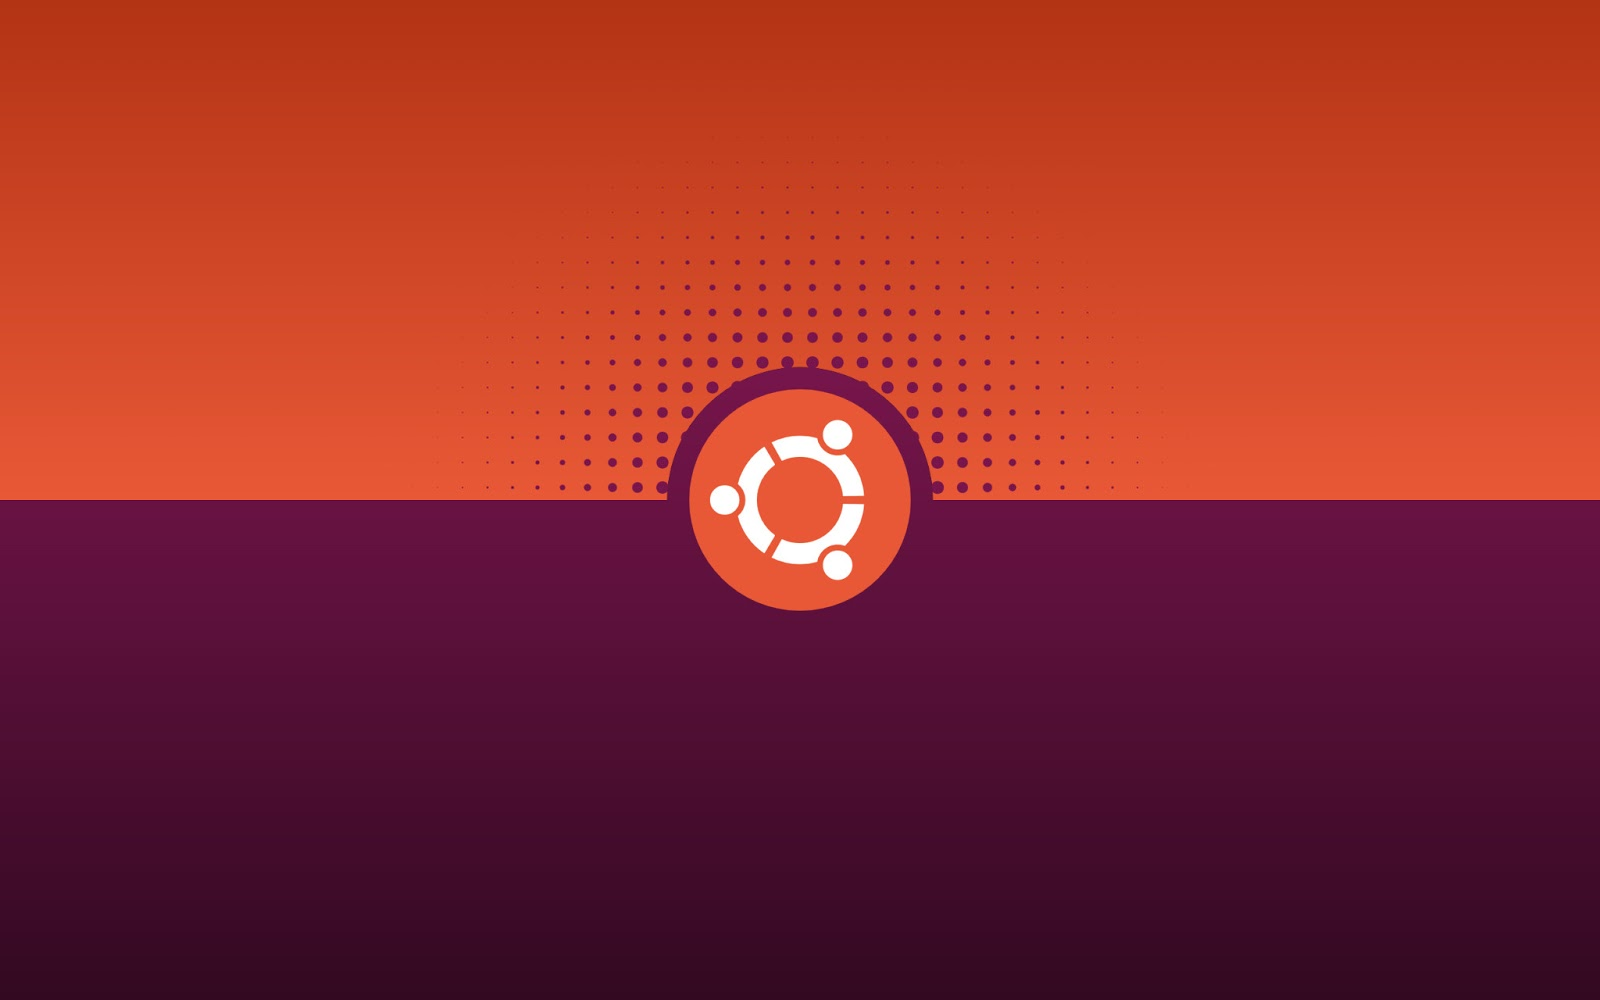 ubuntu wallpapers hd nice wallpapers